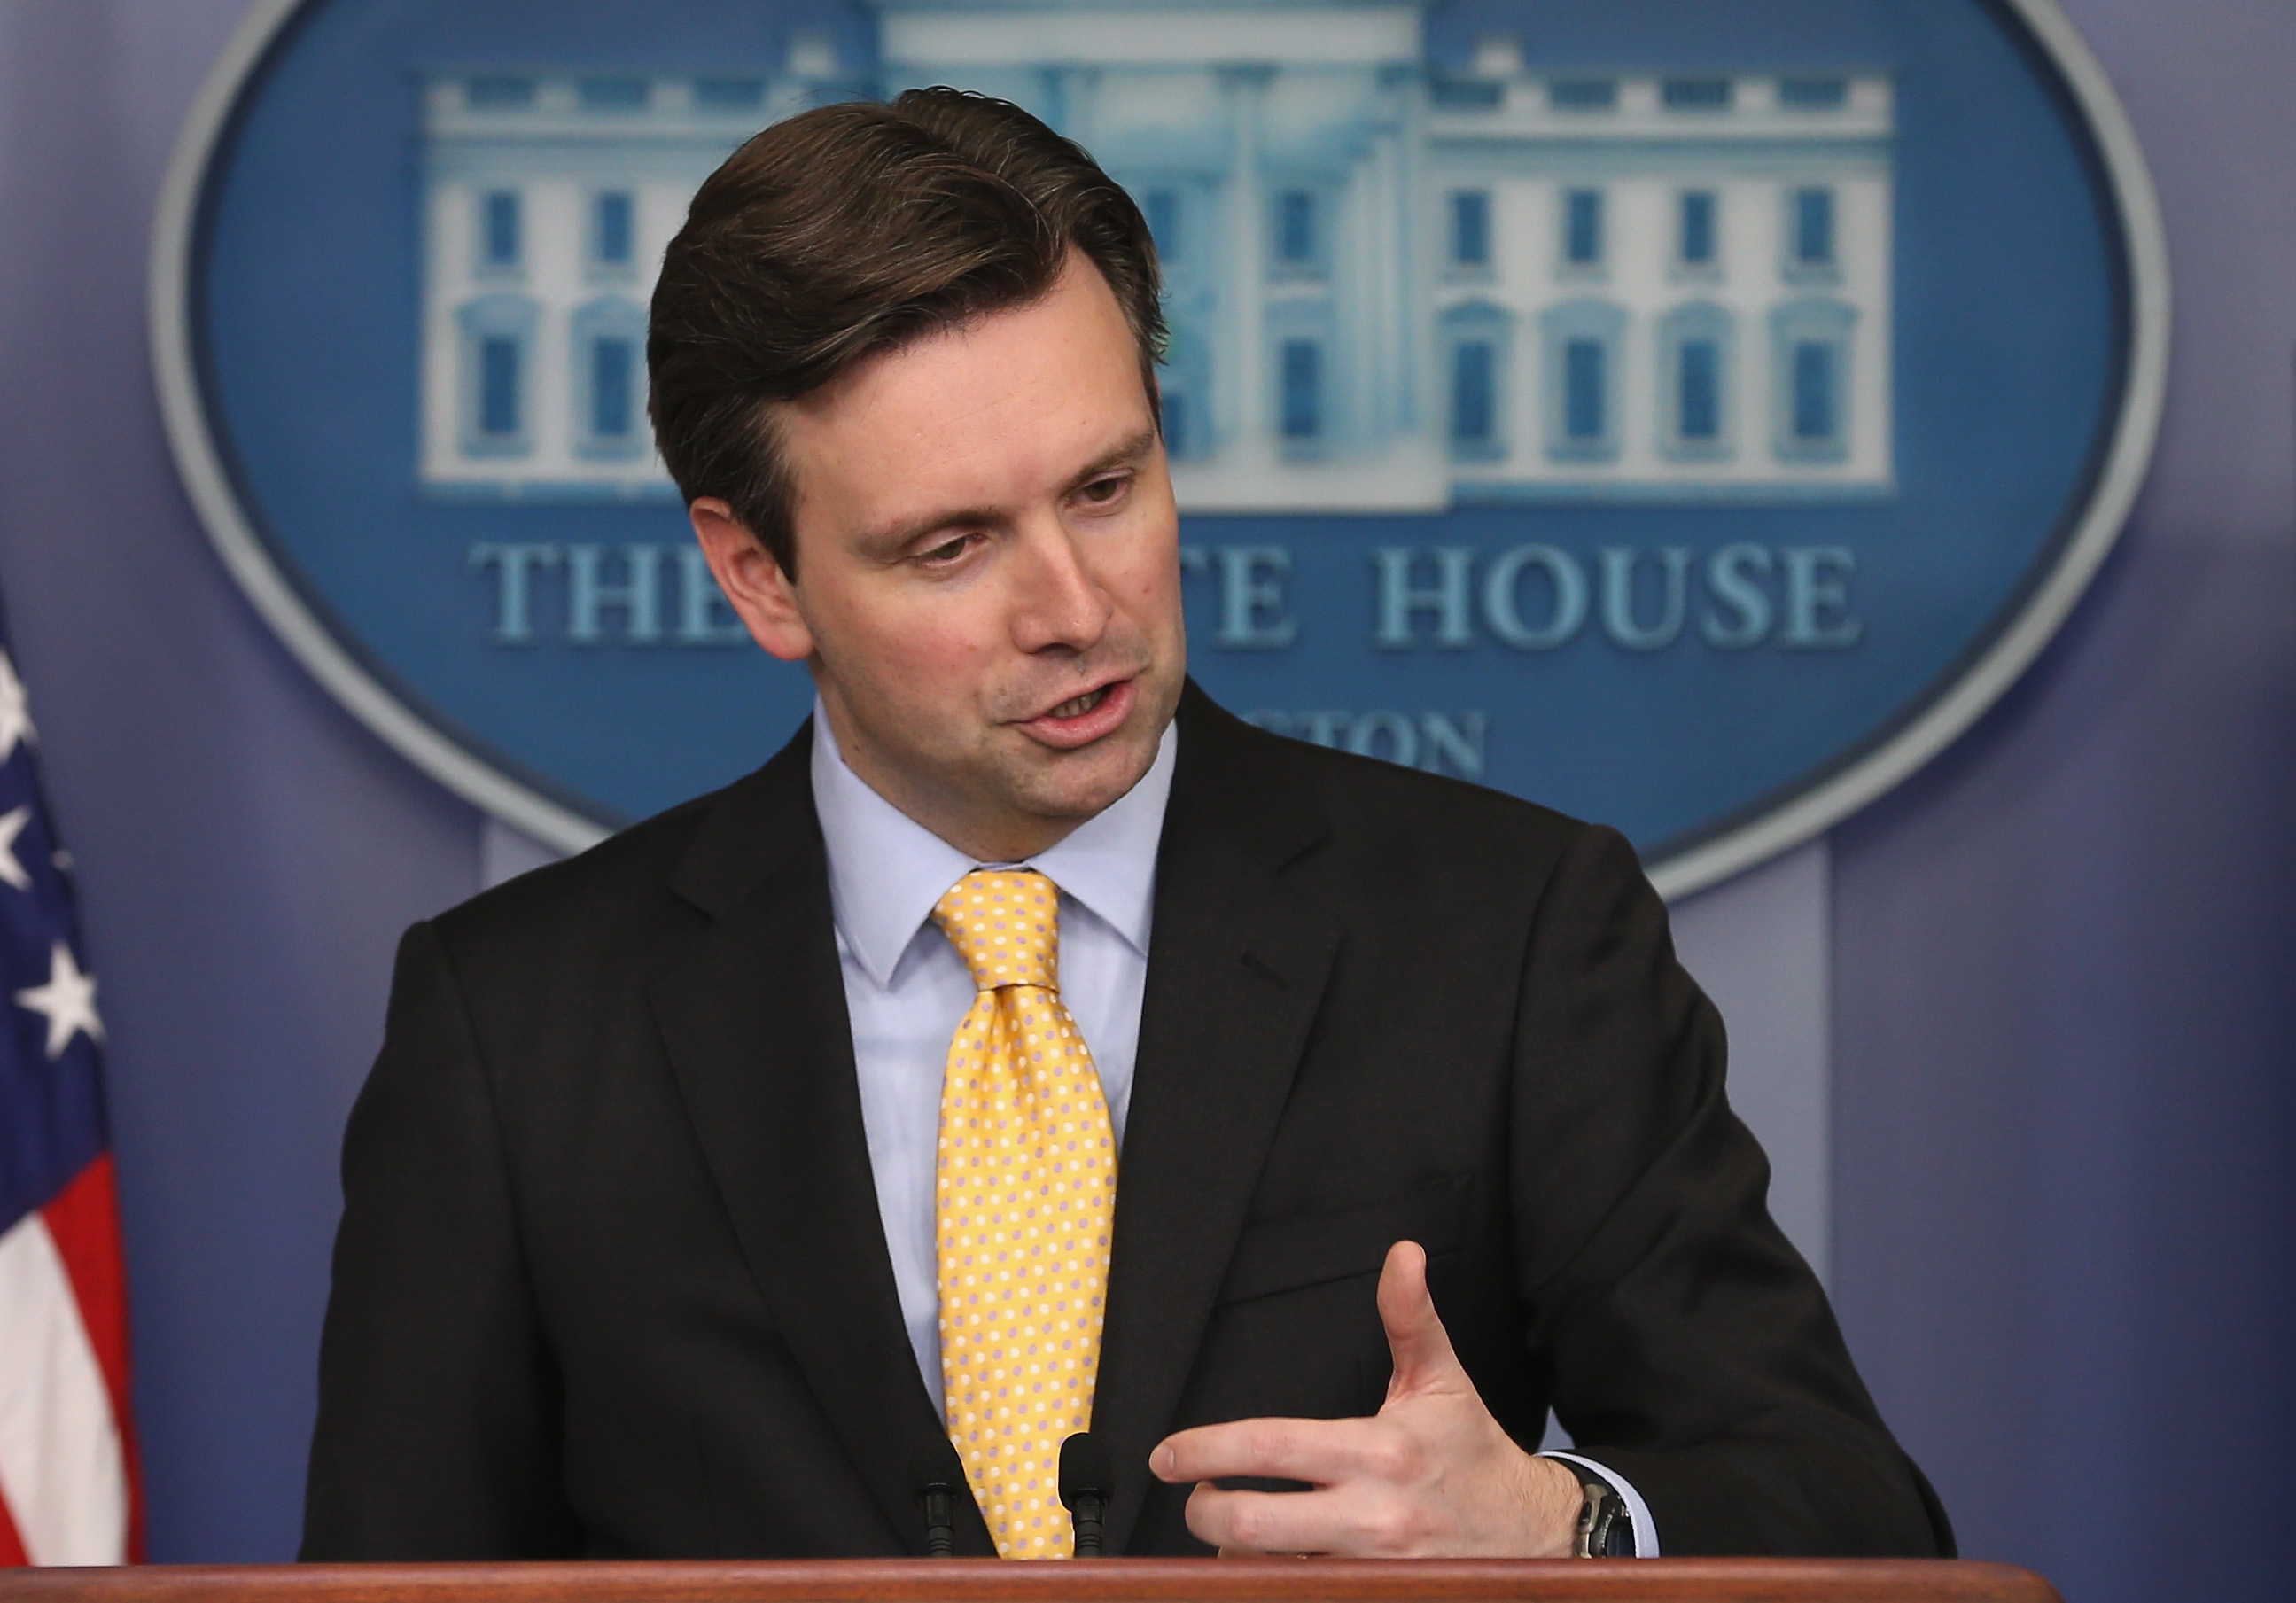 White House Press Secretary Josh Earnest. (Mark Wilson/Getty Images)